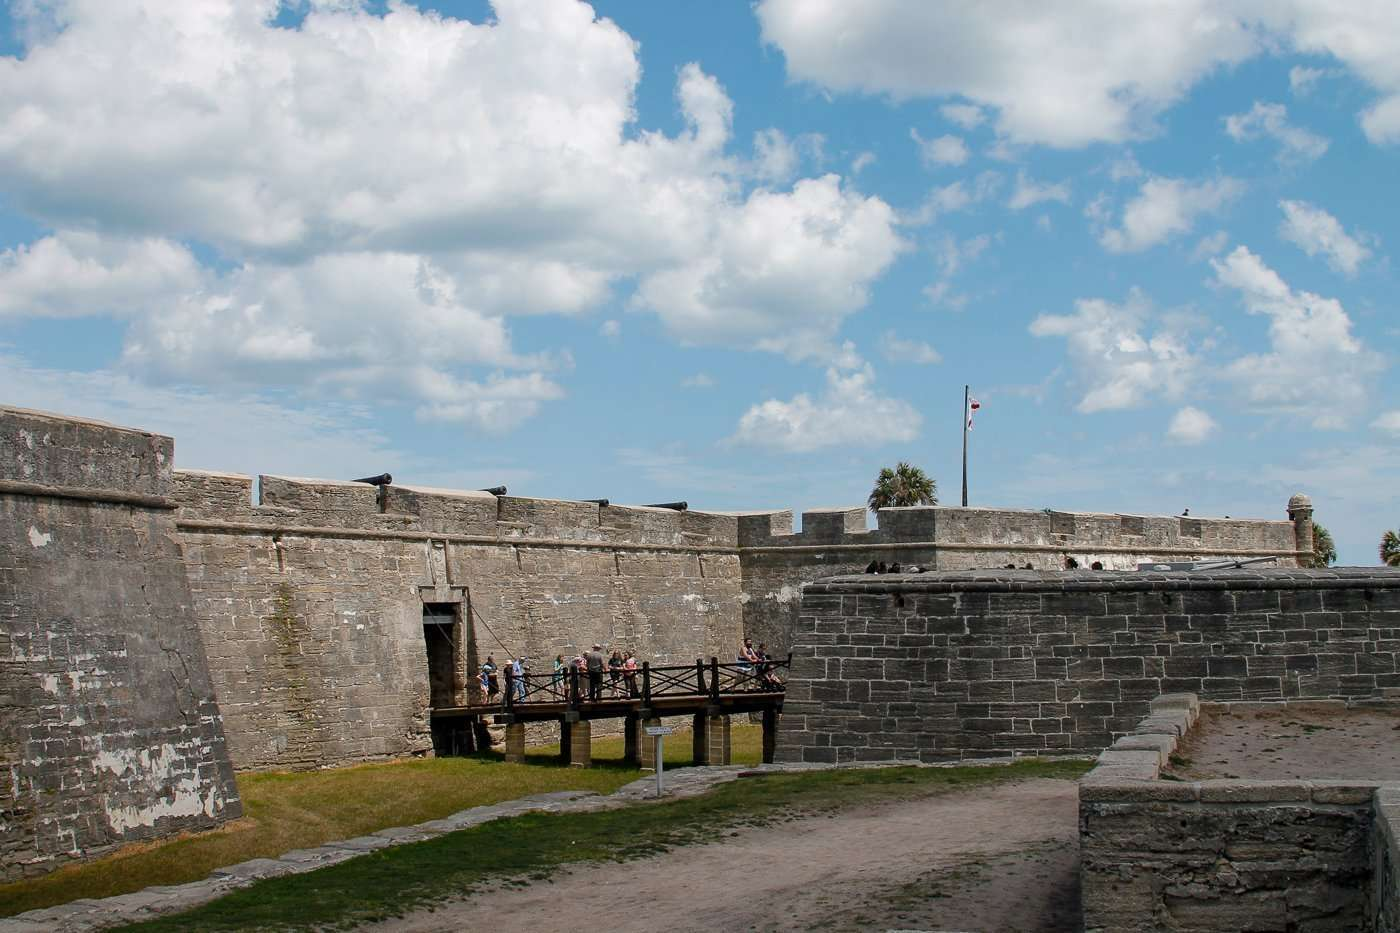 Entrance to Castillo de San Marcos